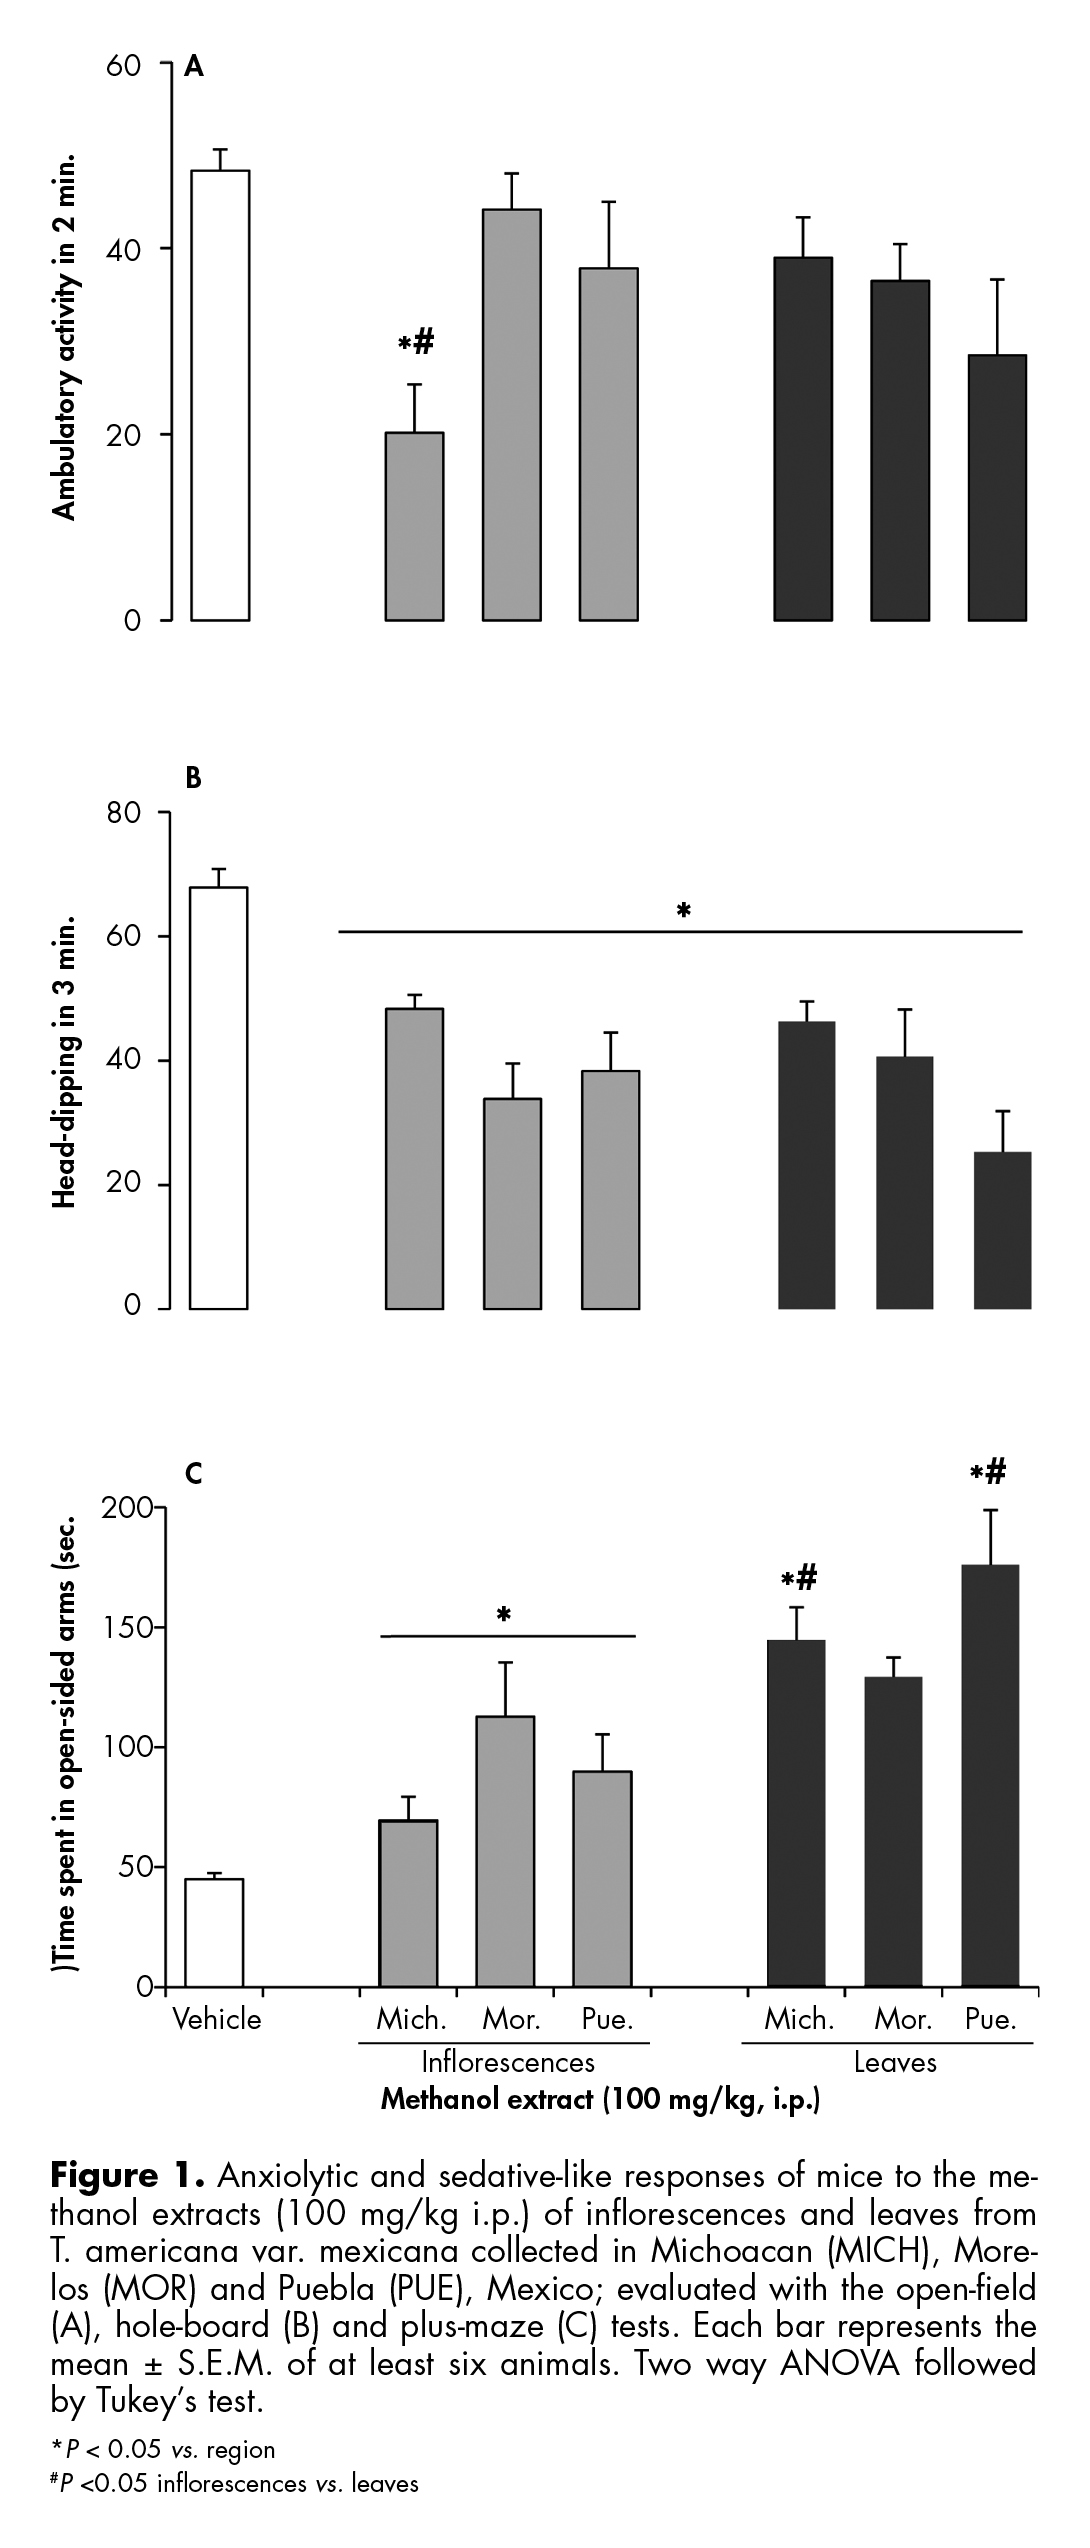 Anxiolytic and sedative-like responses of mice to the methanol extracts (100 mg/kg i.p.) of inflorescences and leaves from T. americana var. mexicana.